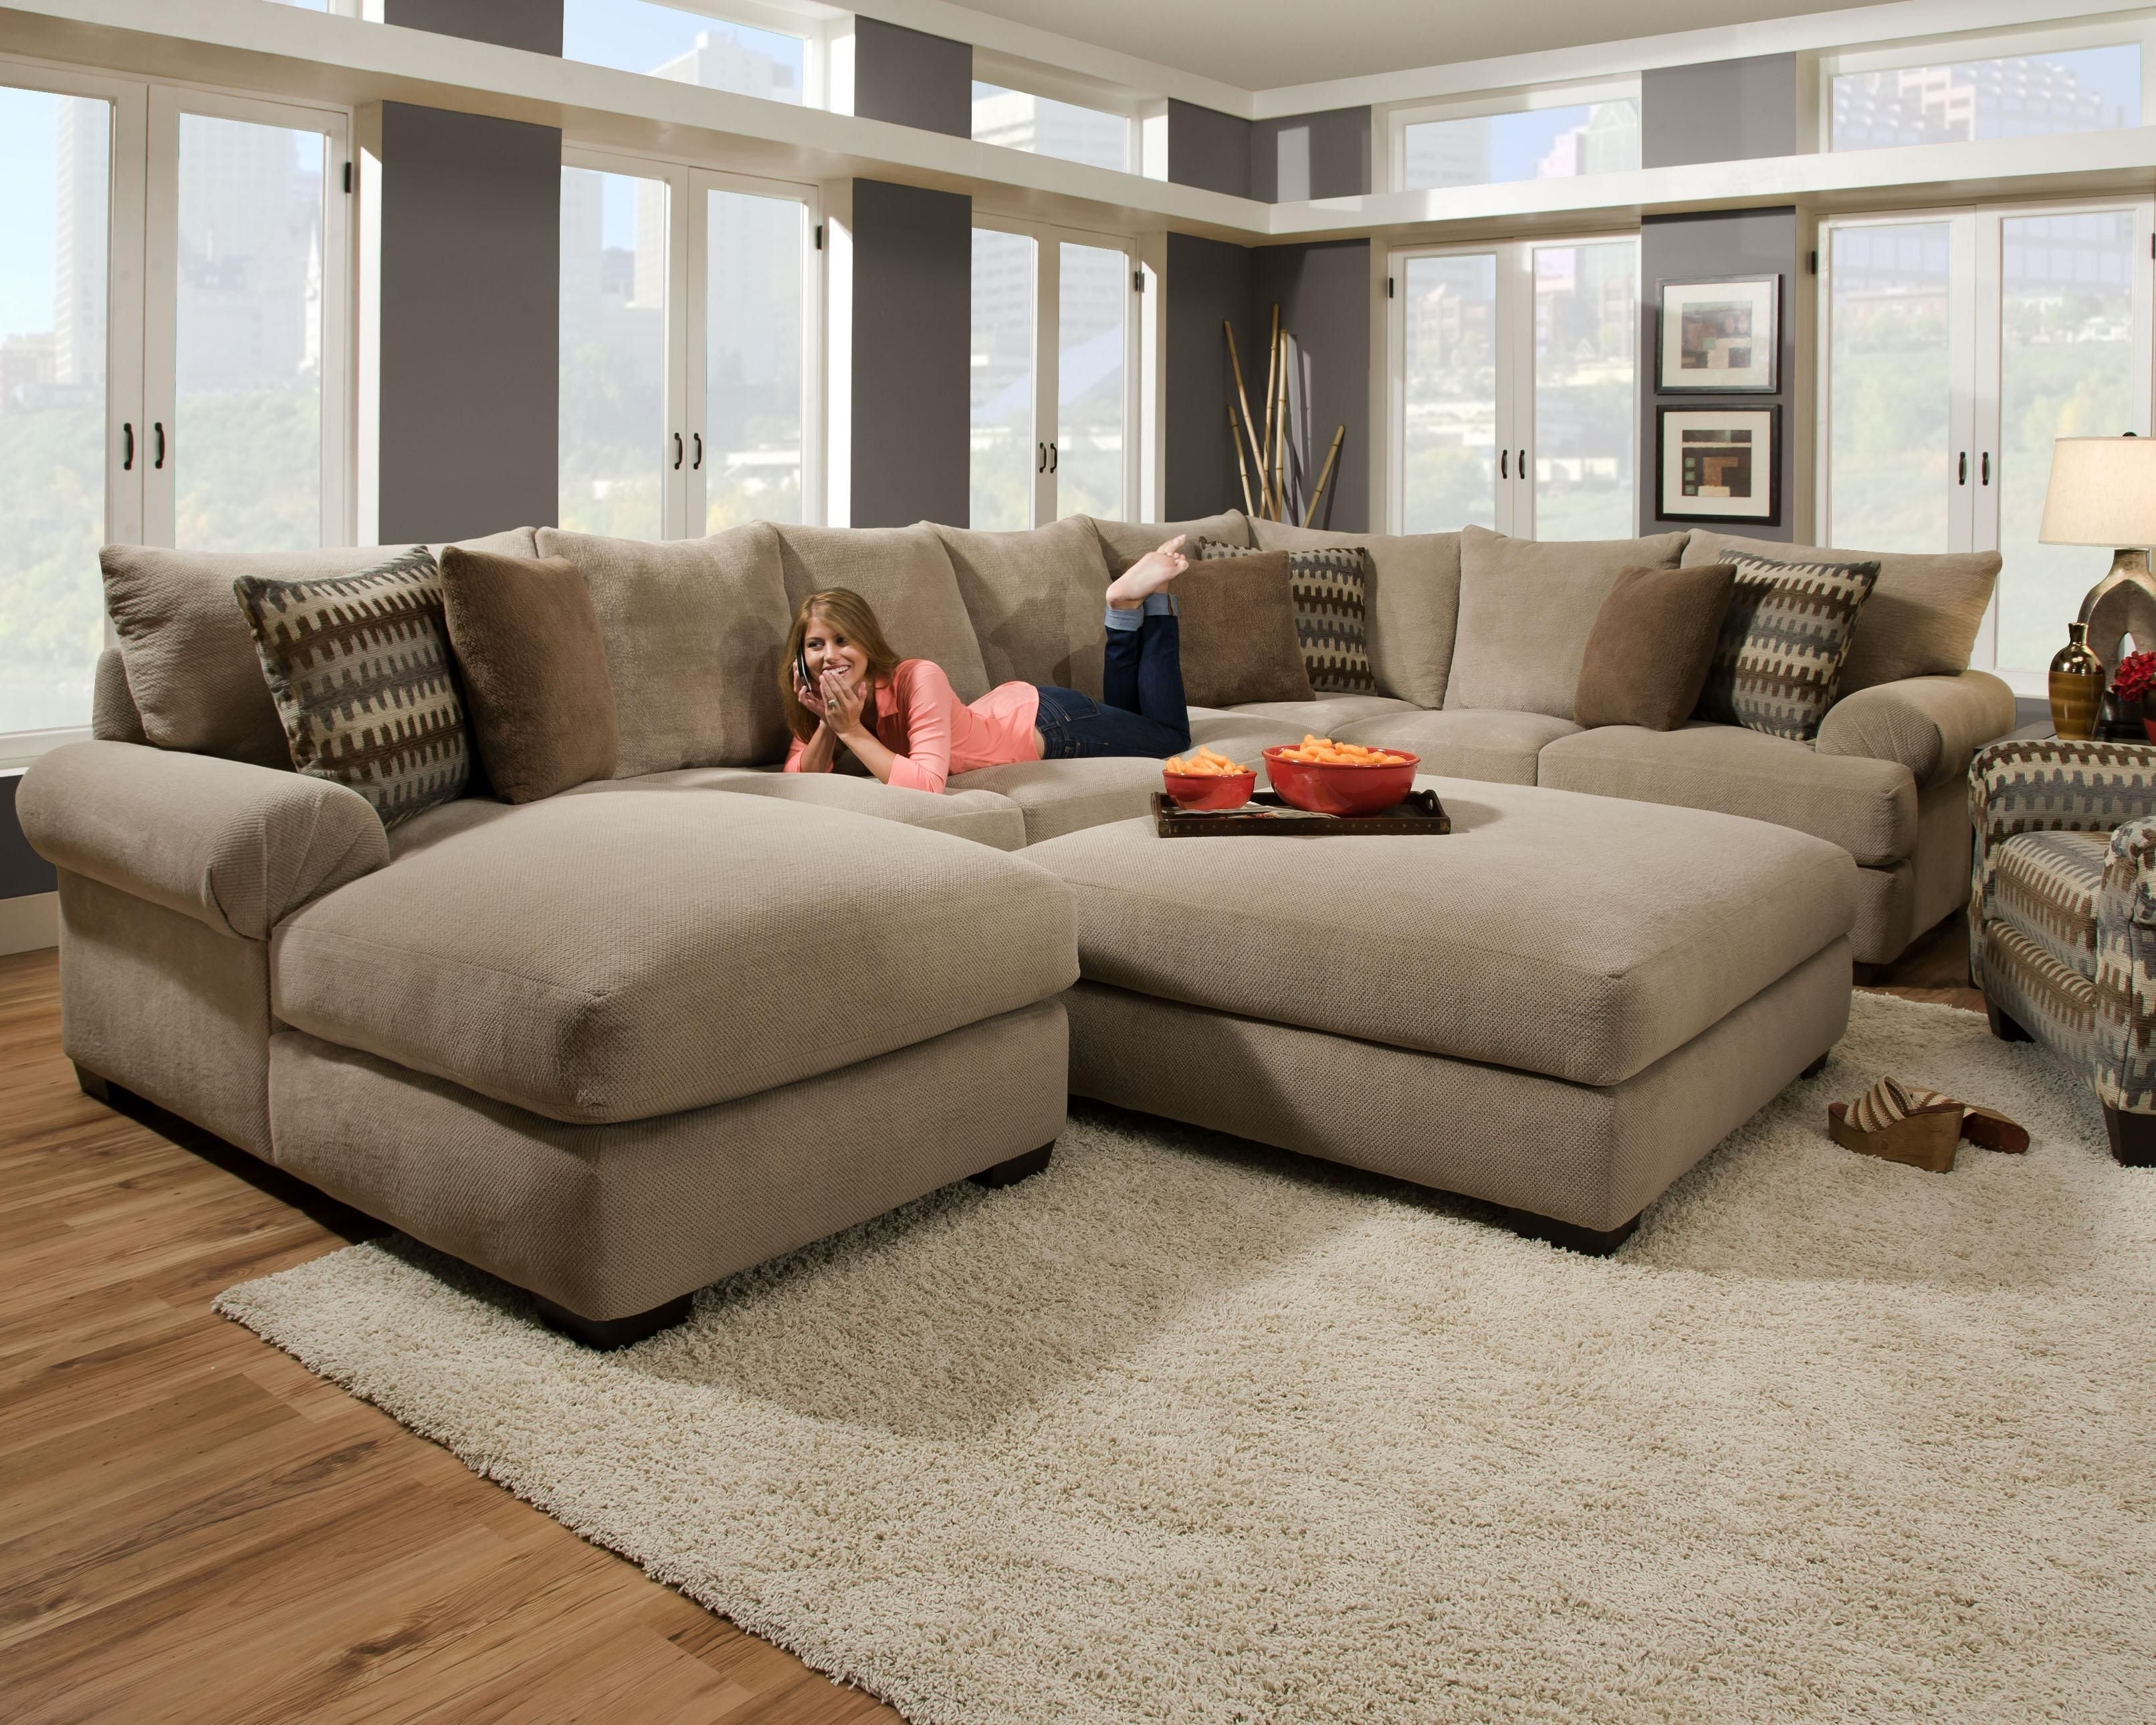 Well Liked Furniture Design Idea For Living Room And Oversized U Shaped Within Deep U Shaped Sectionals (View 2 of 20)